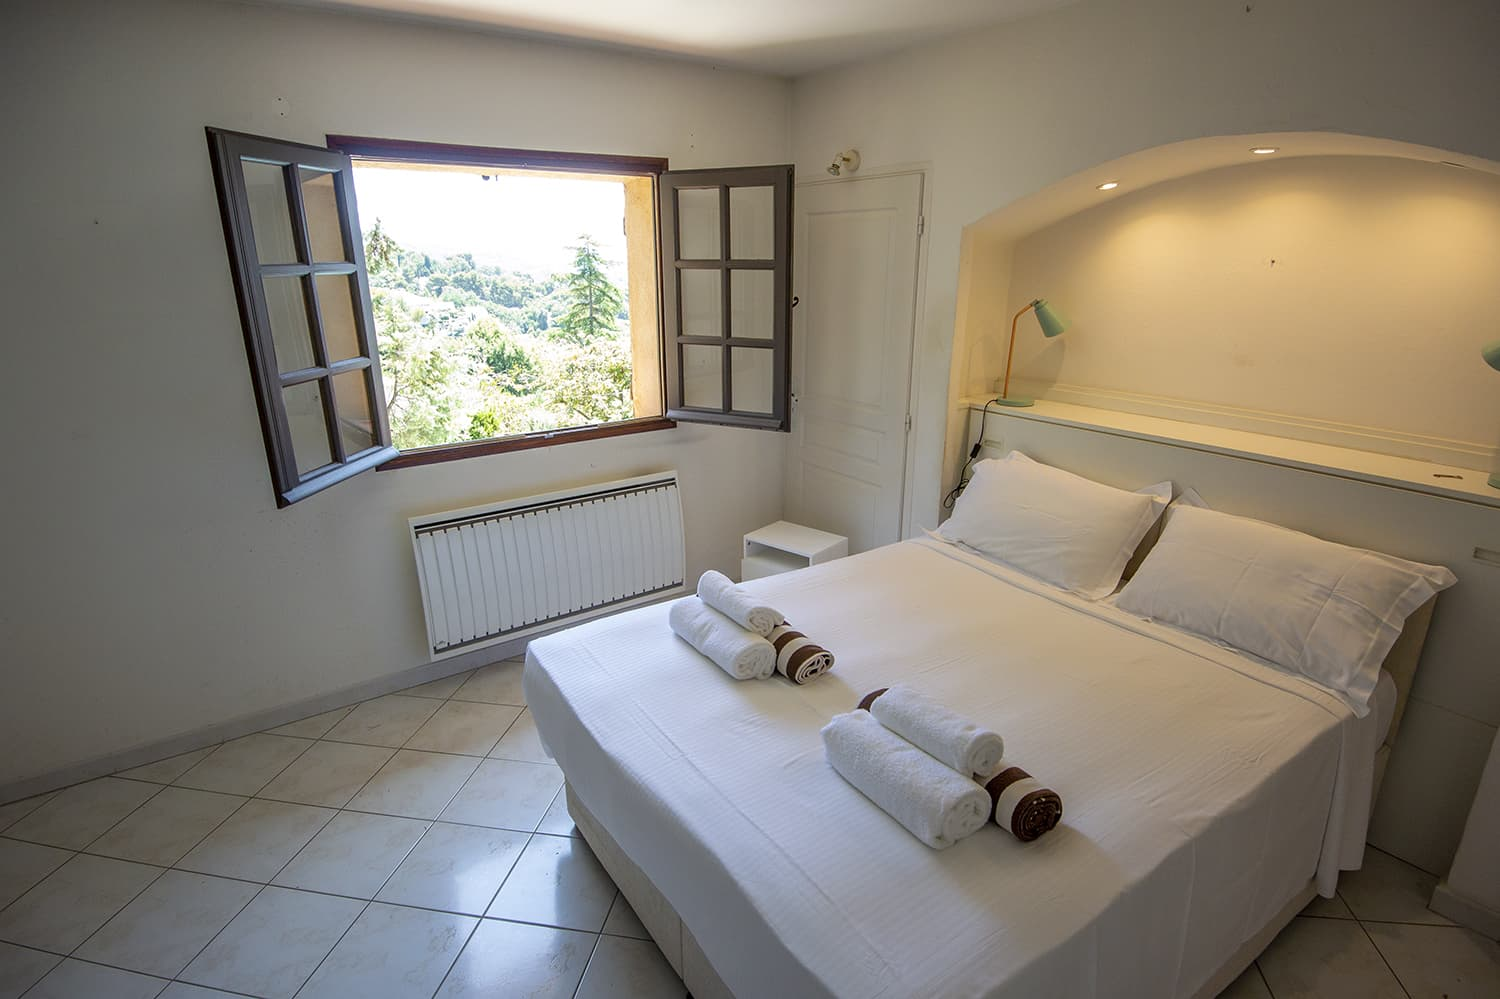 Bedroom in Mougins, Provence-Alpes-Côte d'Azur